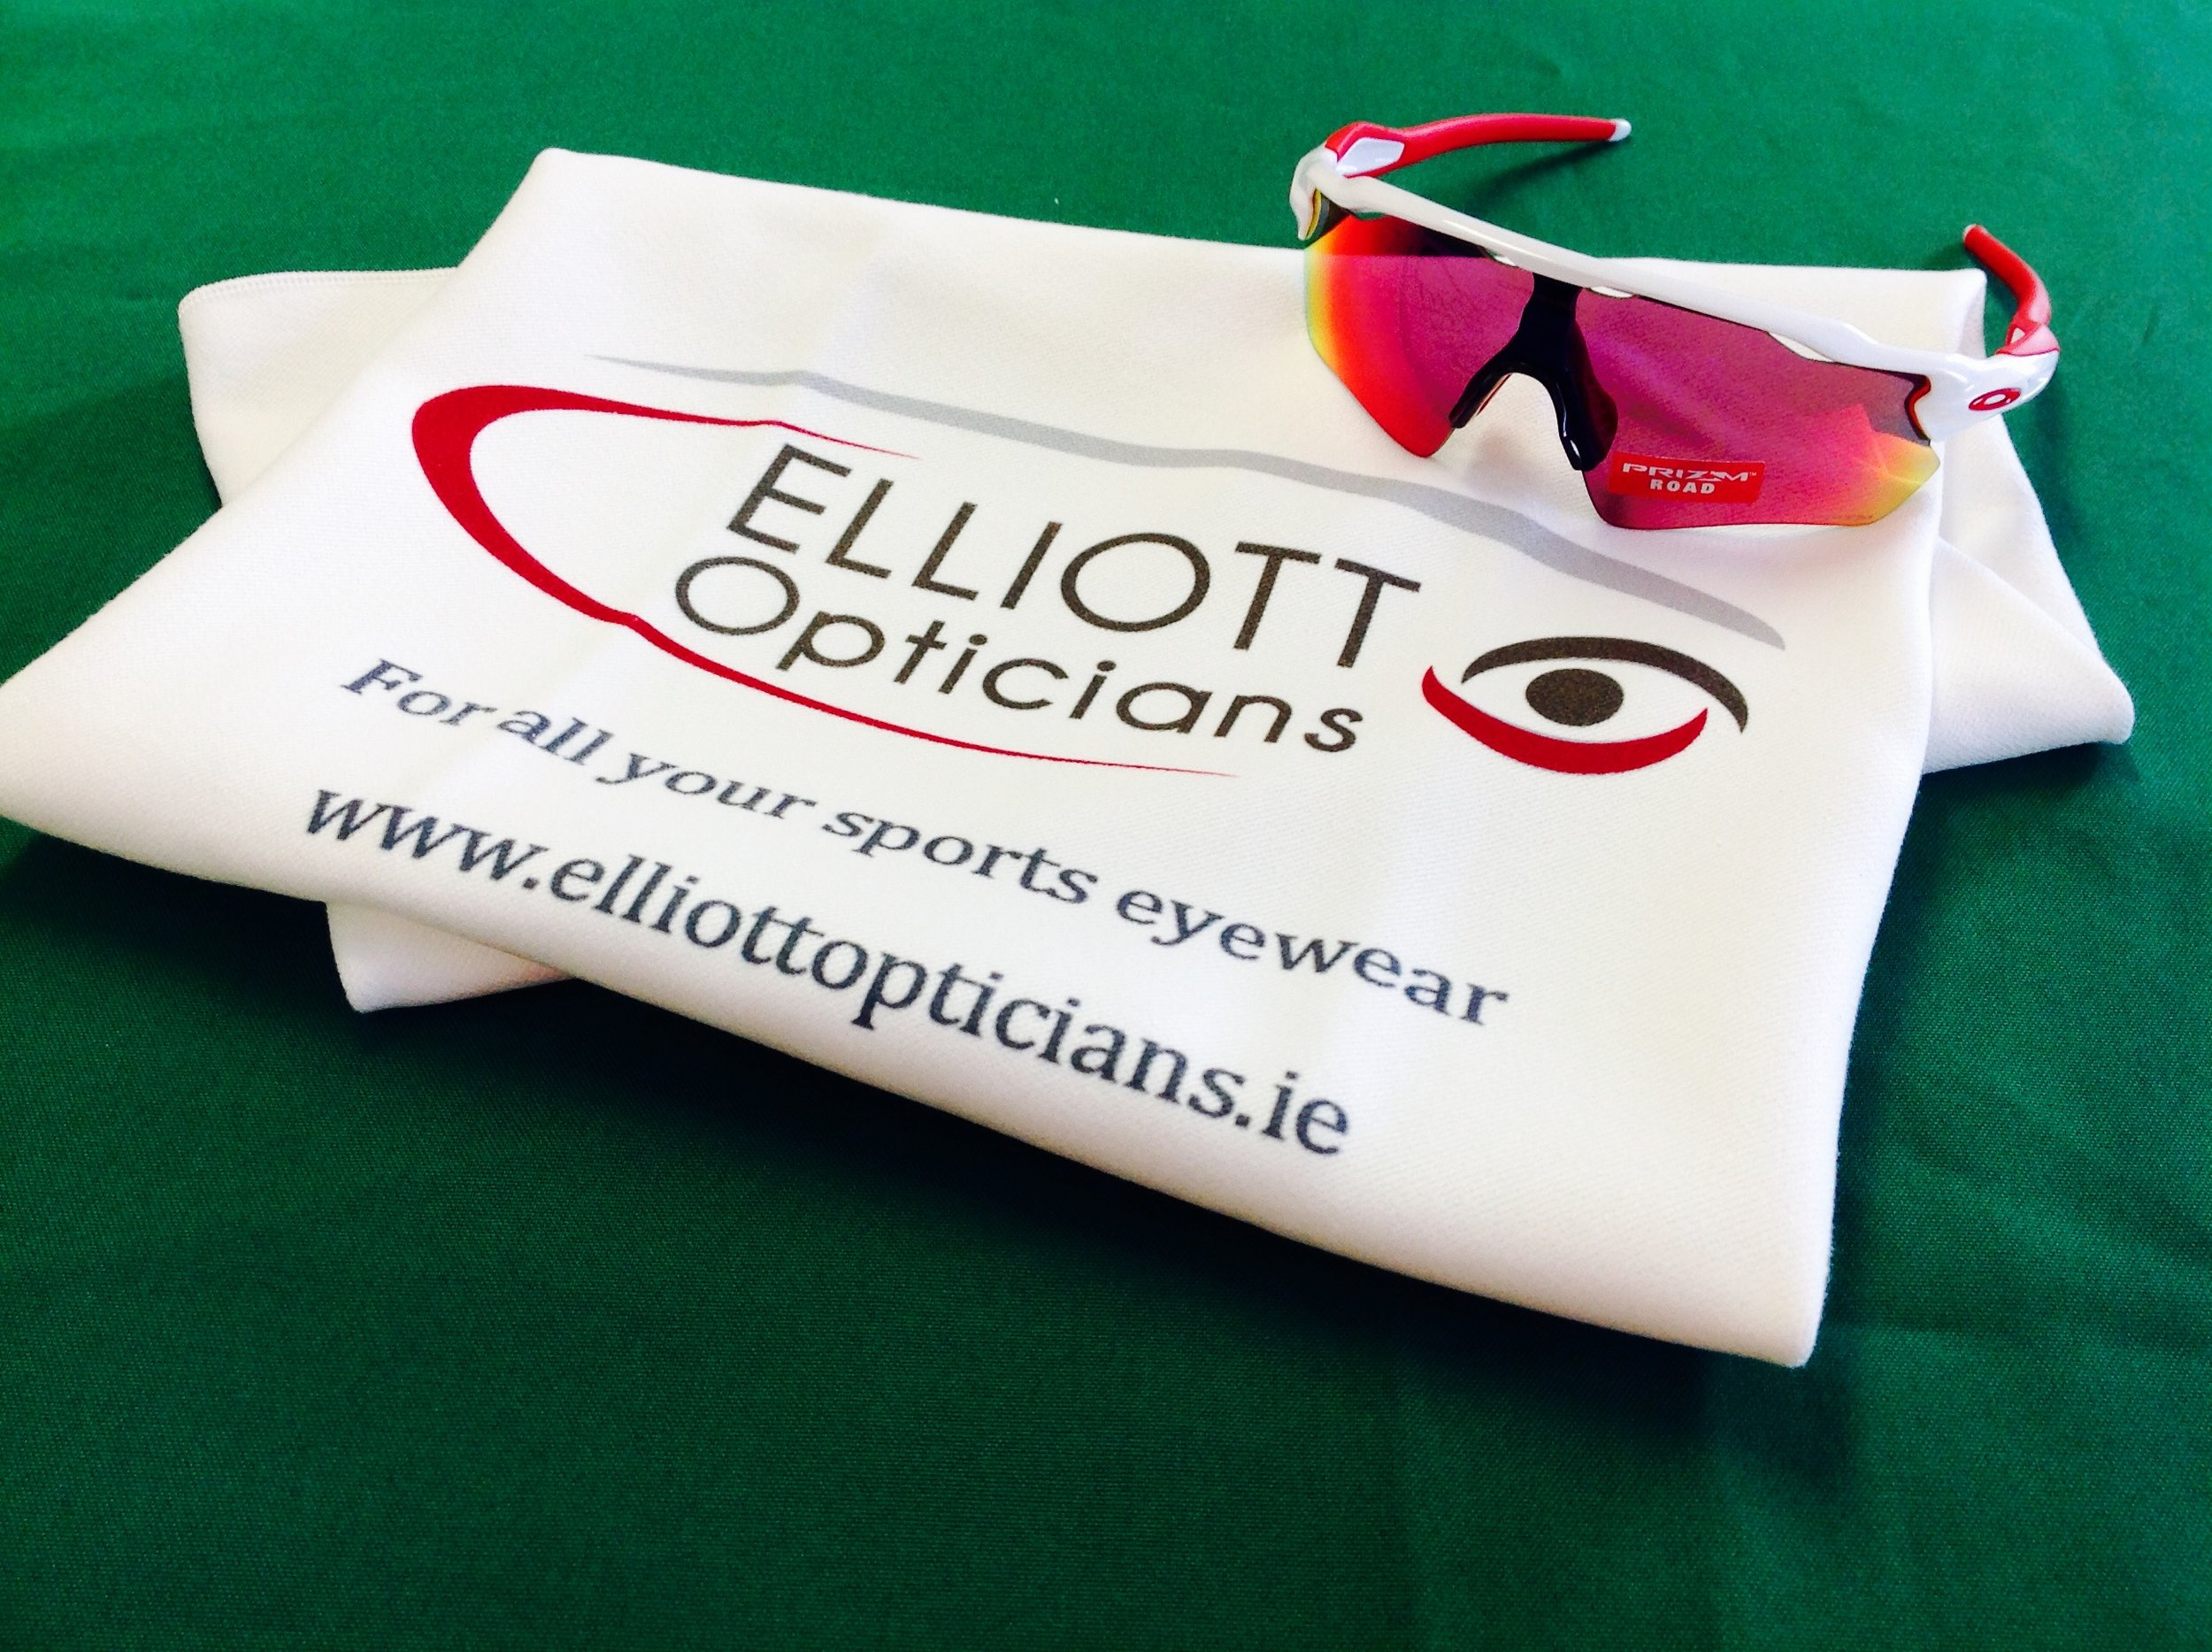 Receive your free Elliott Optician's sports towel when you buy any sport's sunglasses in store. We offer a wide range of sunglasses for all types of sports. Pop in at your convenience and we can help you choose the perfect pair. - Receive your free Elliott Optician's sports towel when you buy any sport's sunglasses in store. We offer a wide range of sunglasses for all types of sports. Pop in at your convenience and we can help you choose the perfect pair.